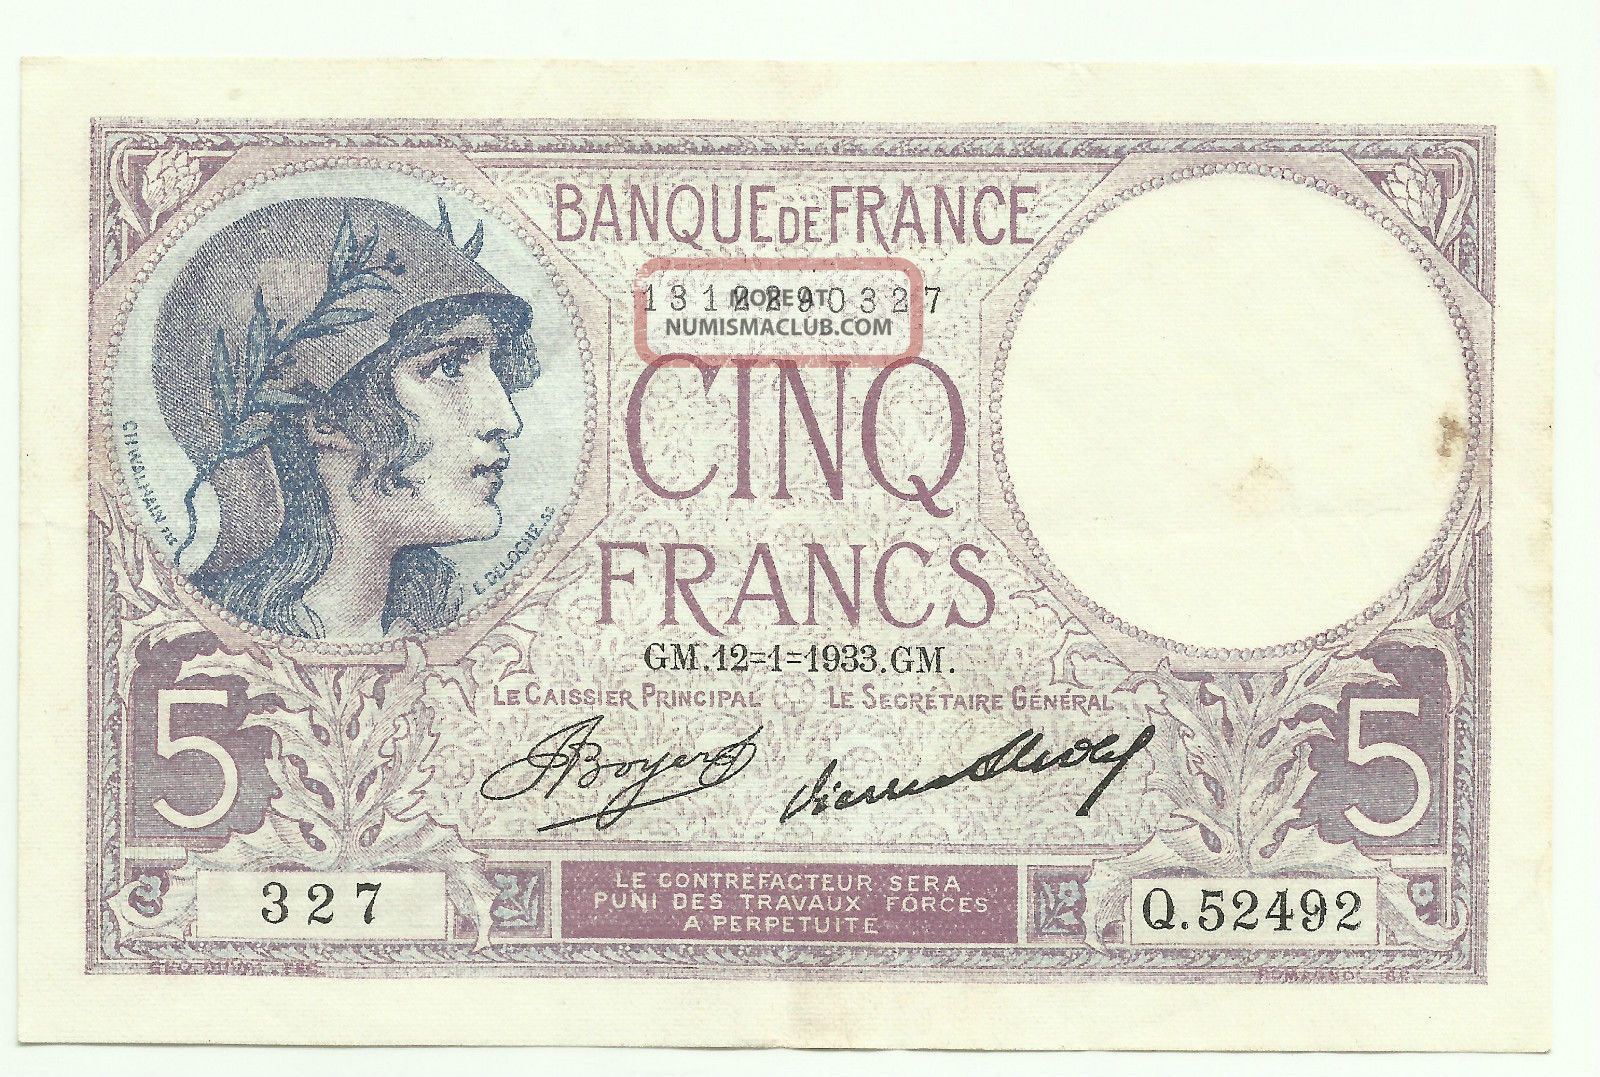 France 5 Francs 12/1/1933 P - 72e Vf++ Europe photo